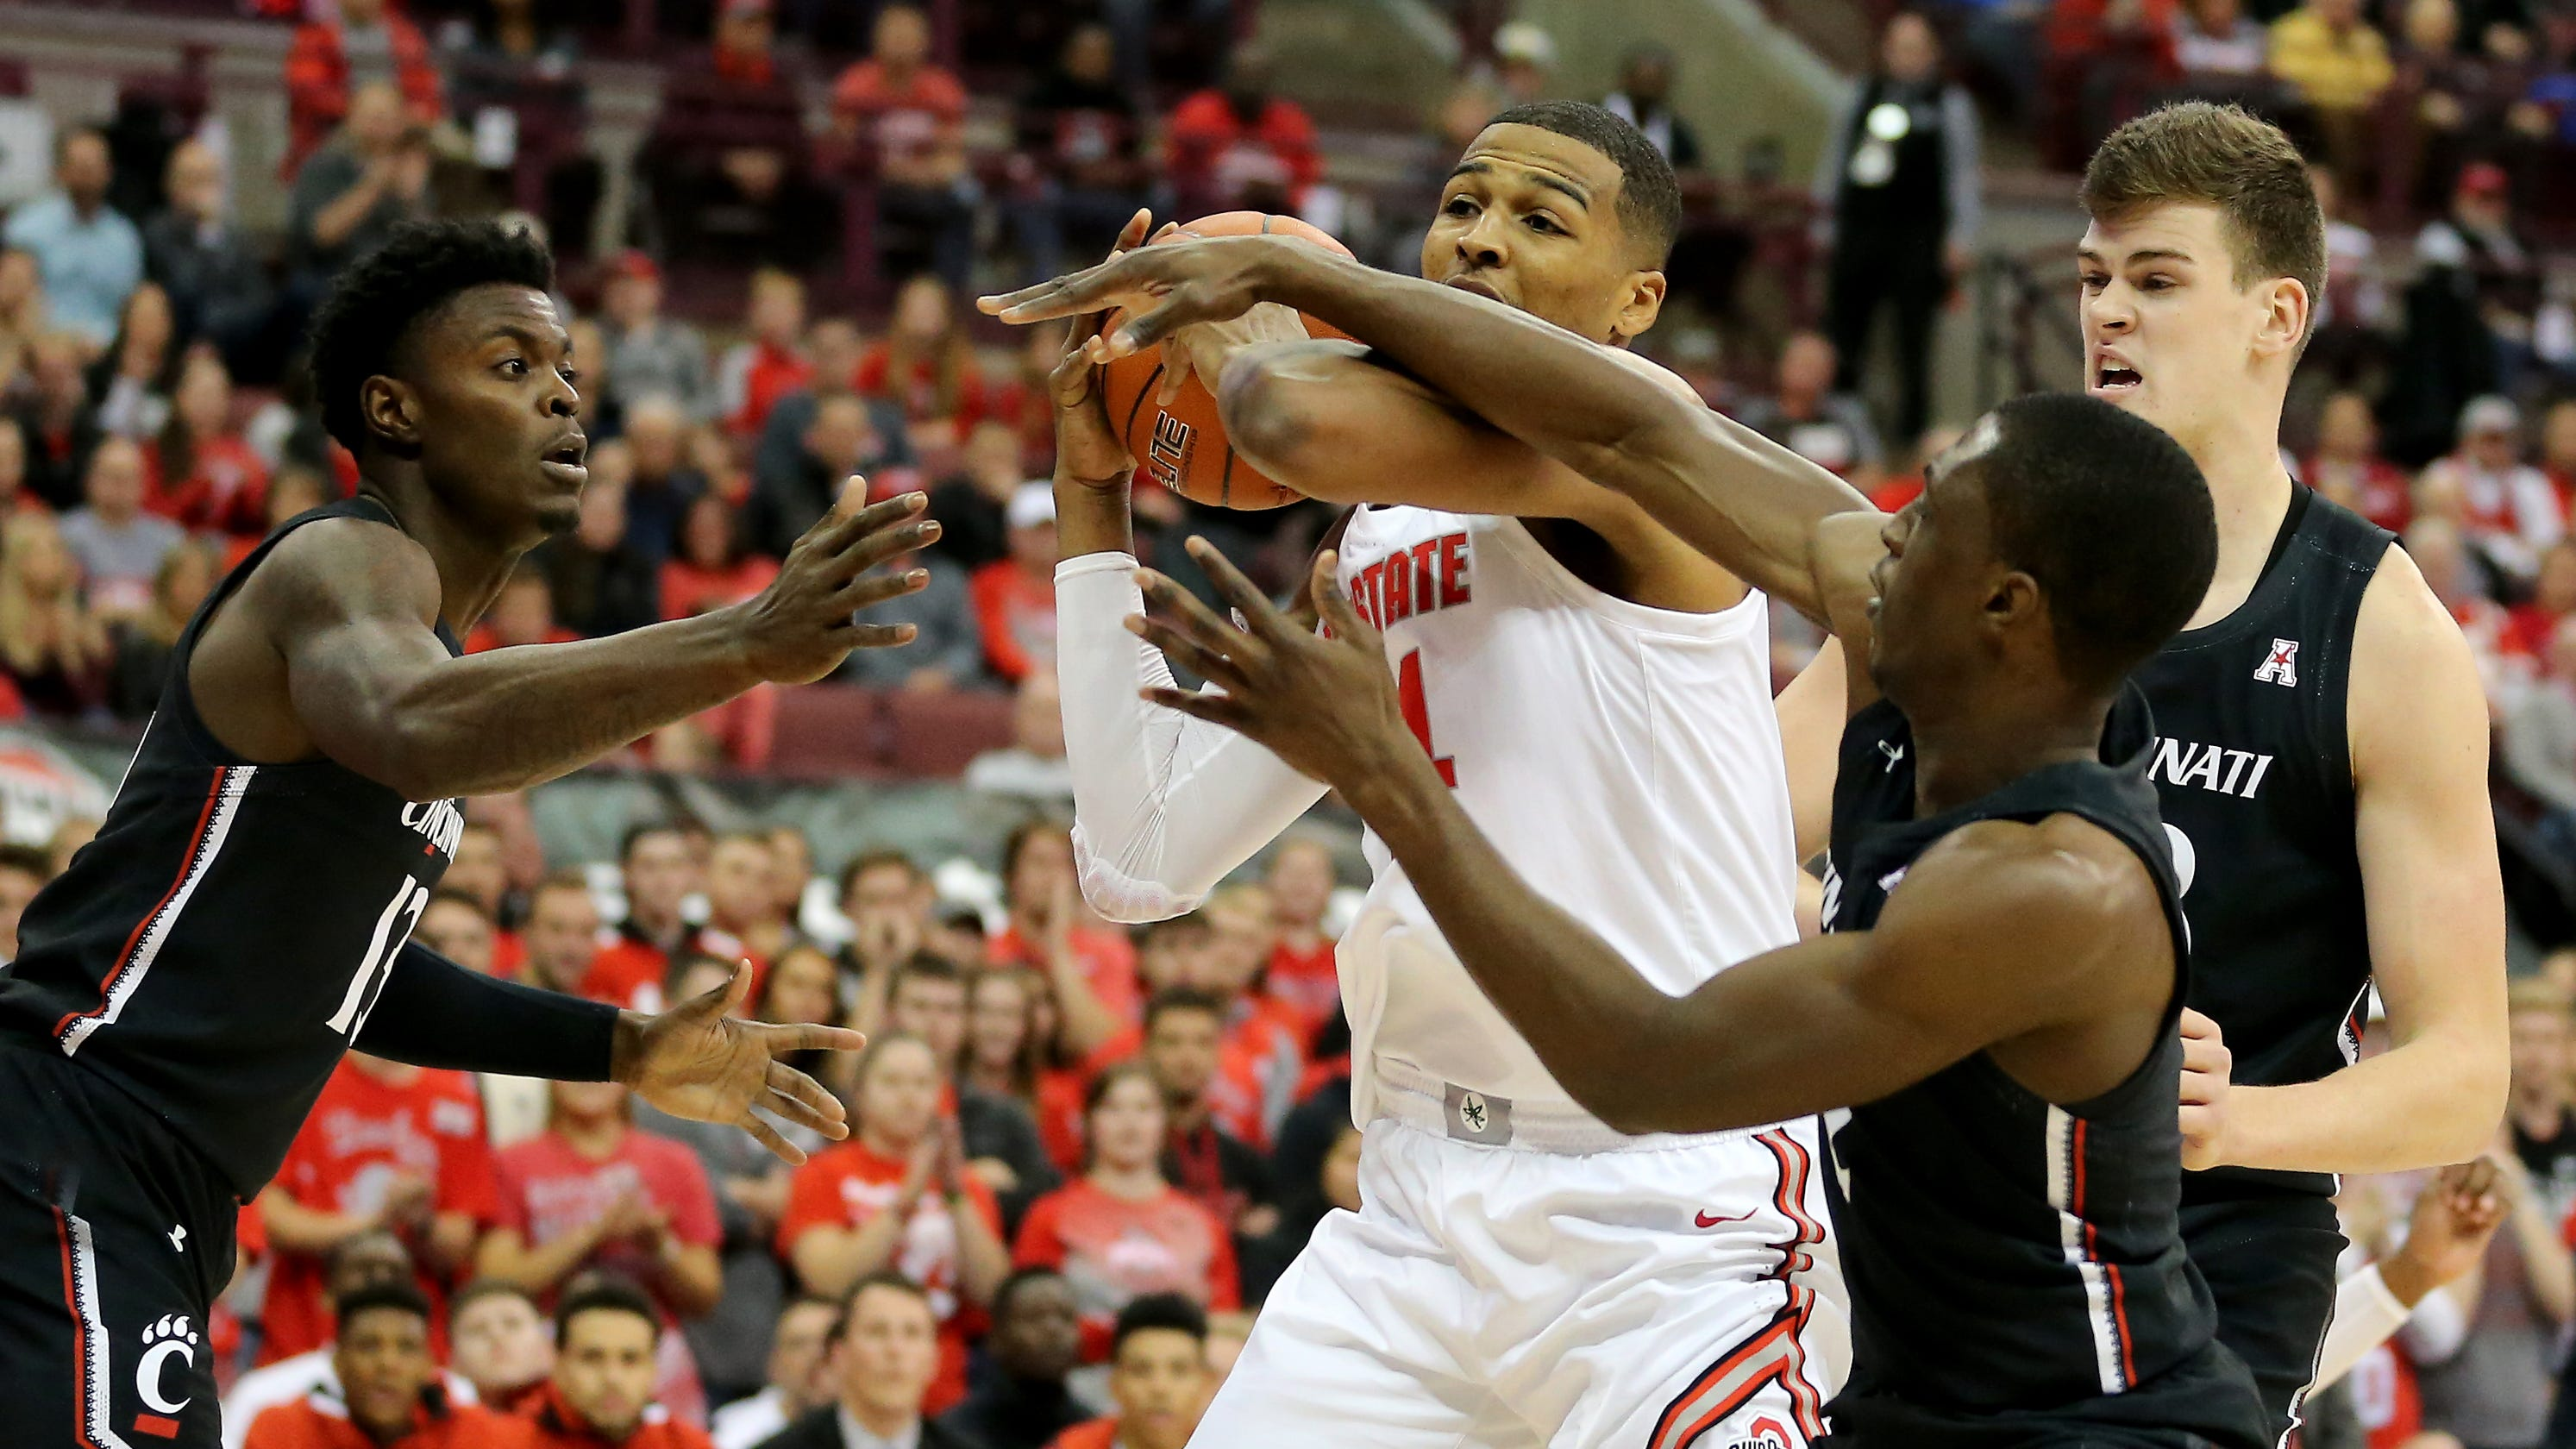 No 18 Ohio State Pulls Away From Uc Basketball In Strong